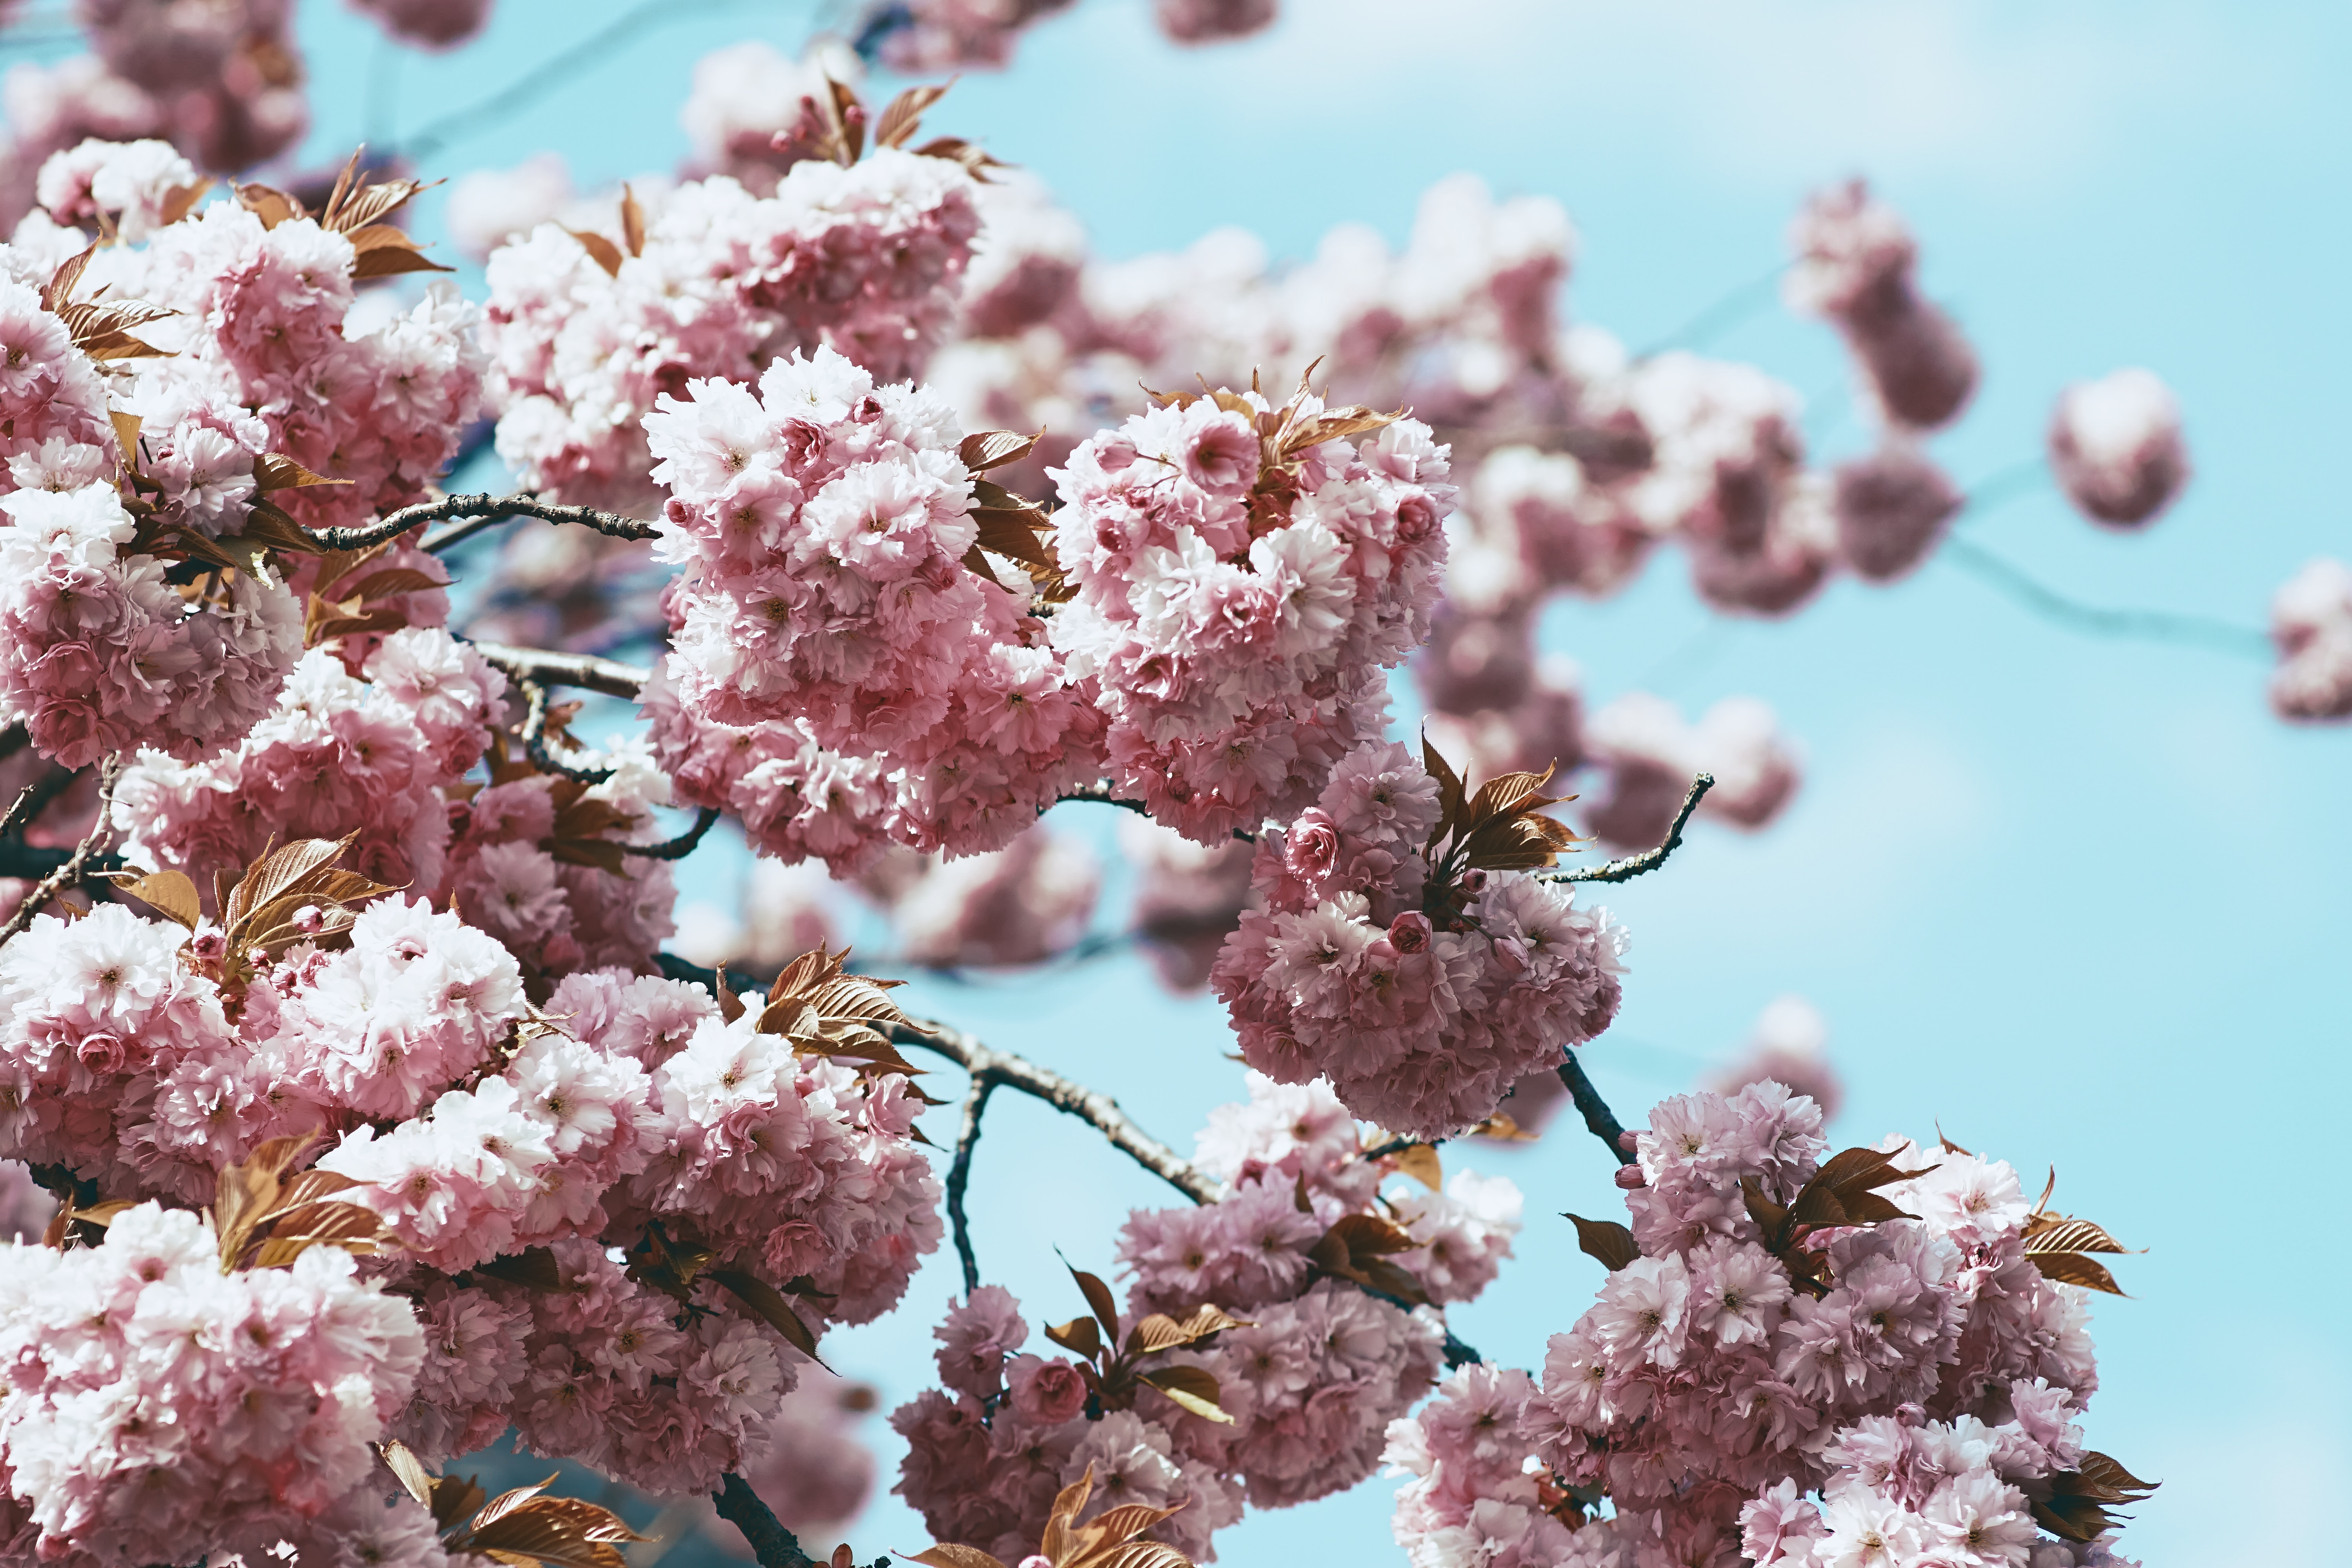 Thick pink blossom on tree branch in Austria with blue sky in Spring